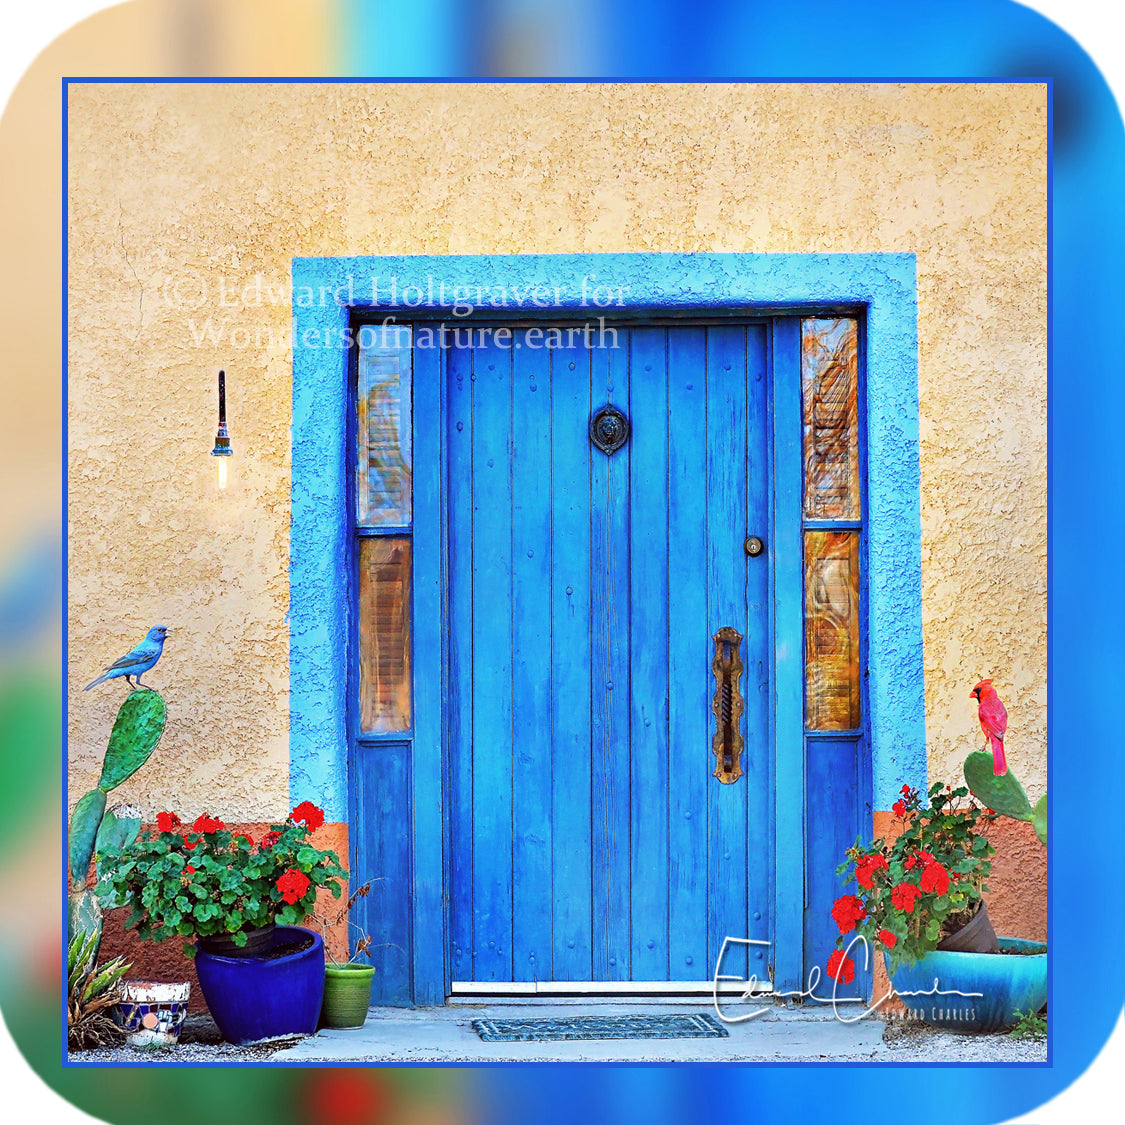 Structures - Blue Door from Tucson, Arizona